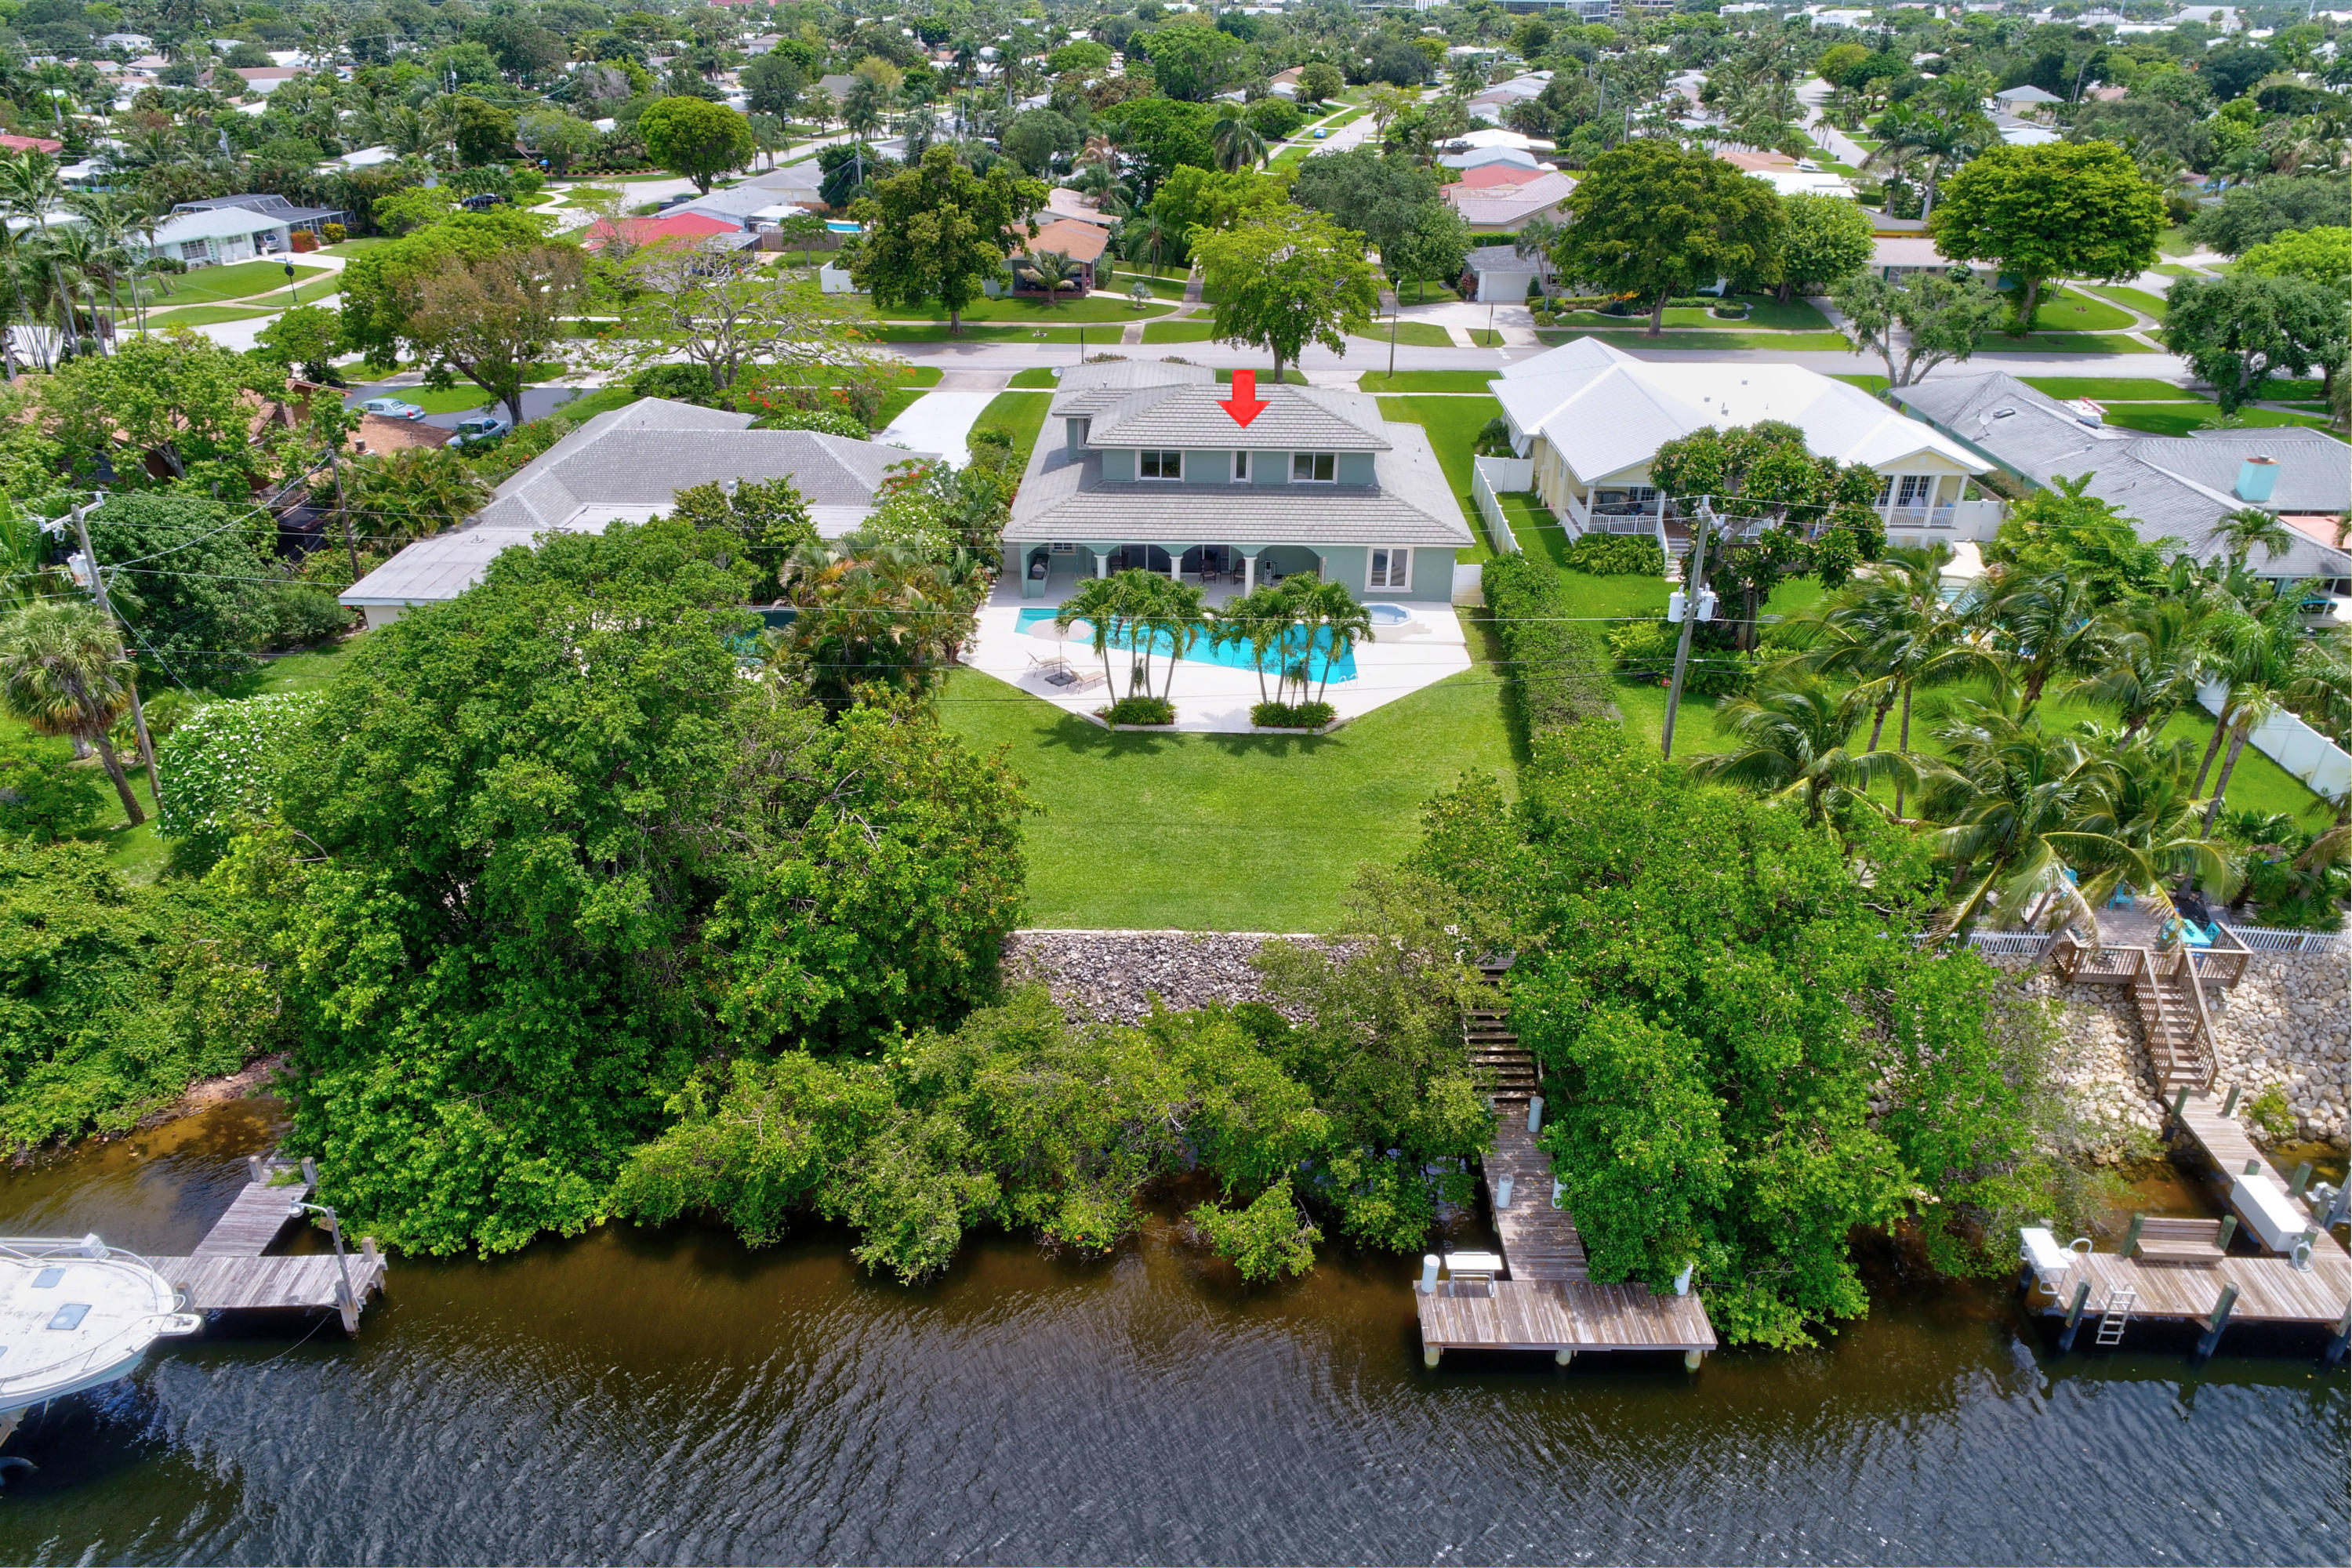 584 Anchorage Drive, North Palm Beach, Florida 33408, 4 Bedrooms Bedrooms, ,6 BathroomsBathrooms,A,Single family,Anchorage,RX-10575369